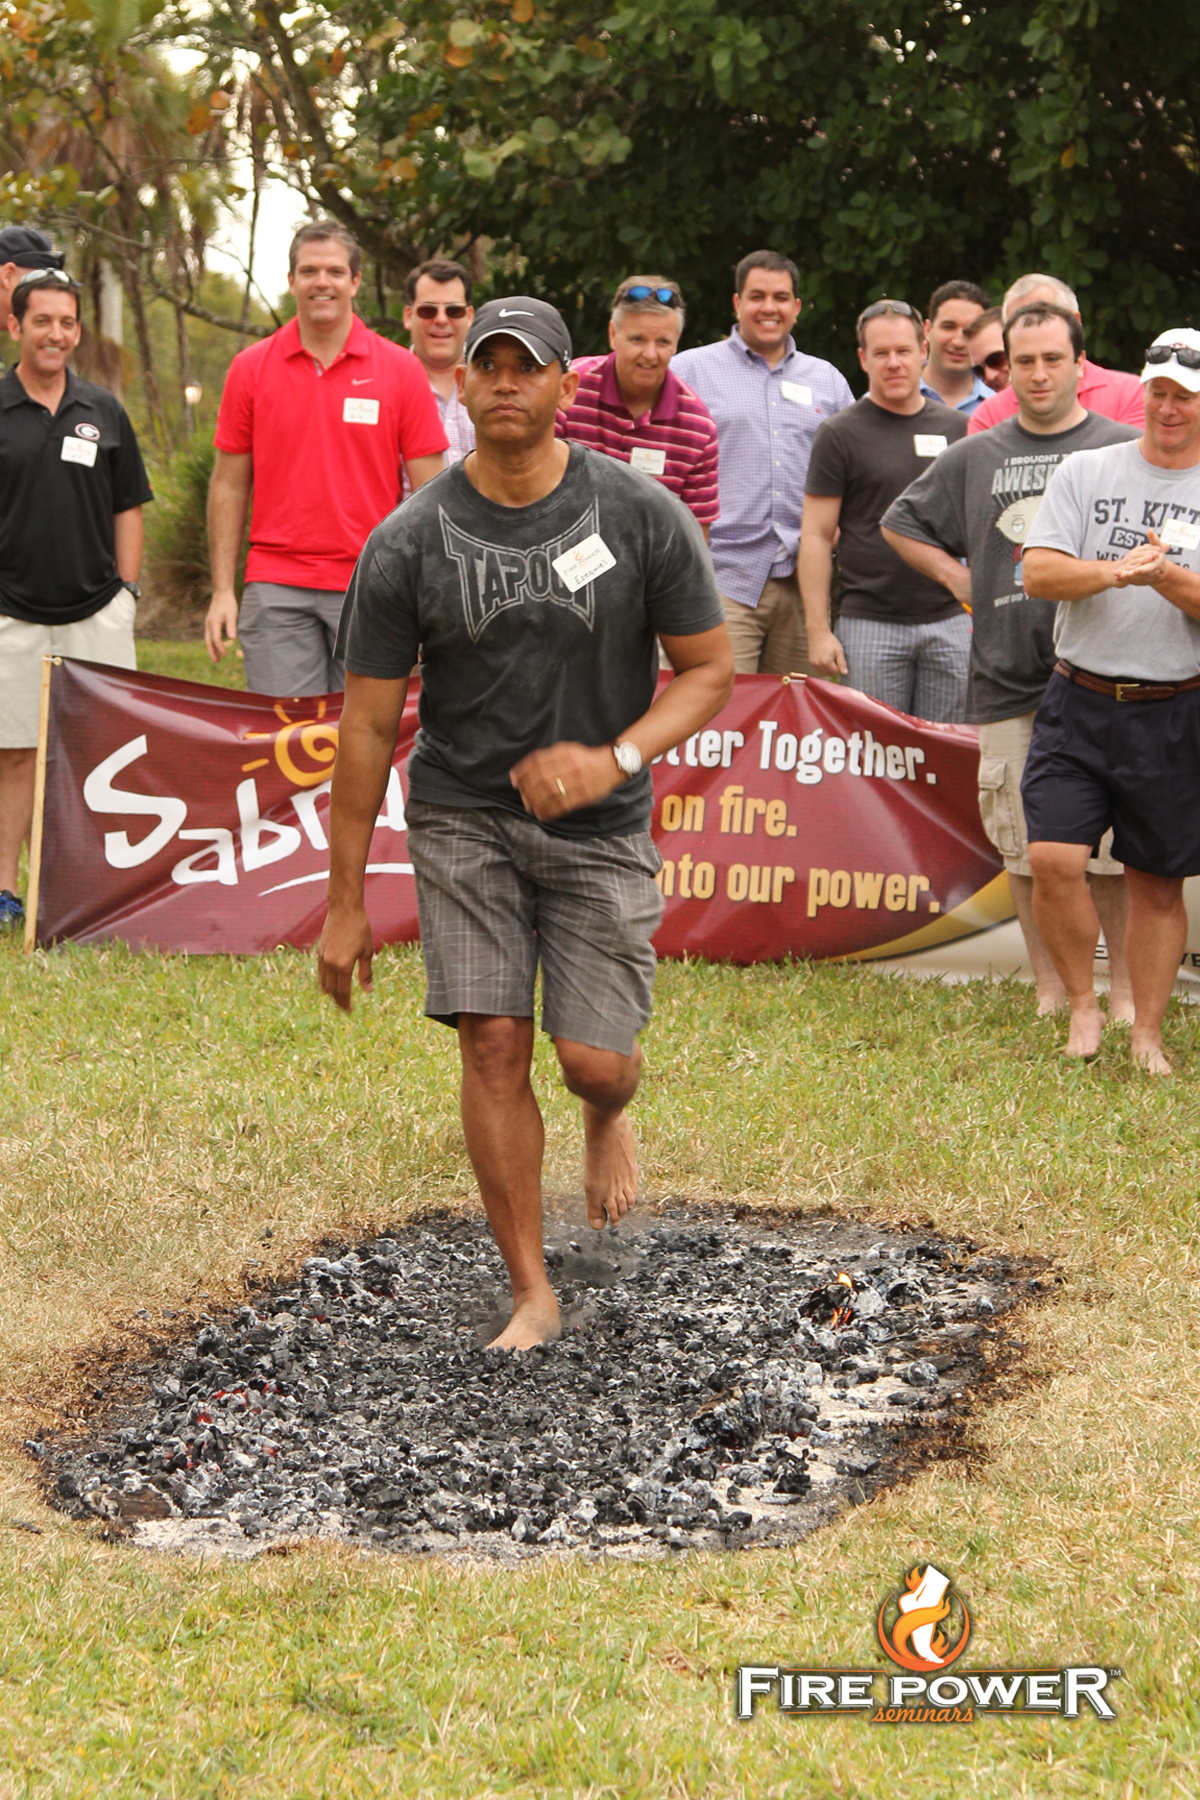 Inspirational Leadership Corporate Fire Walk